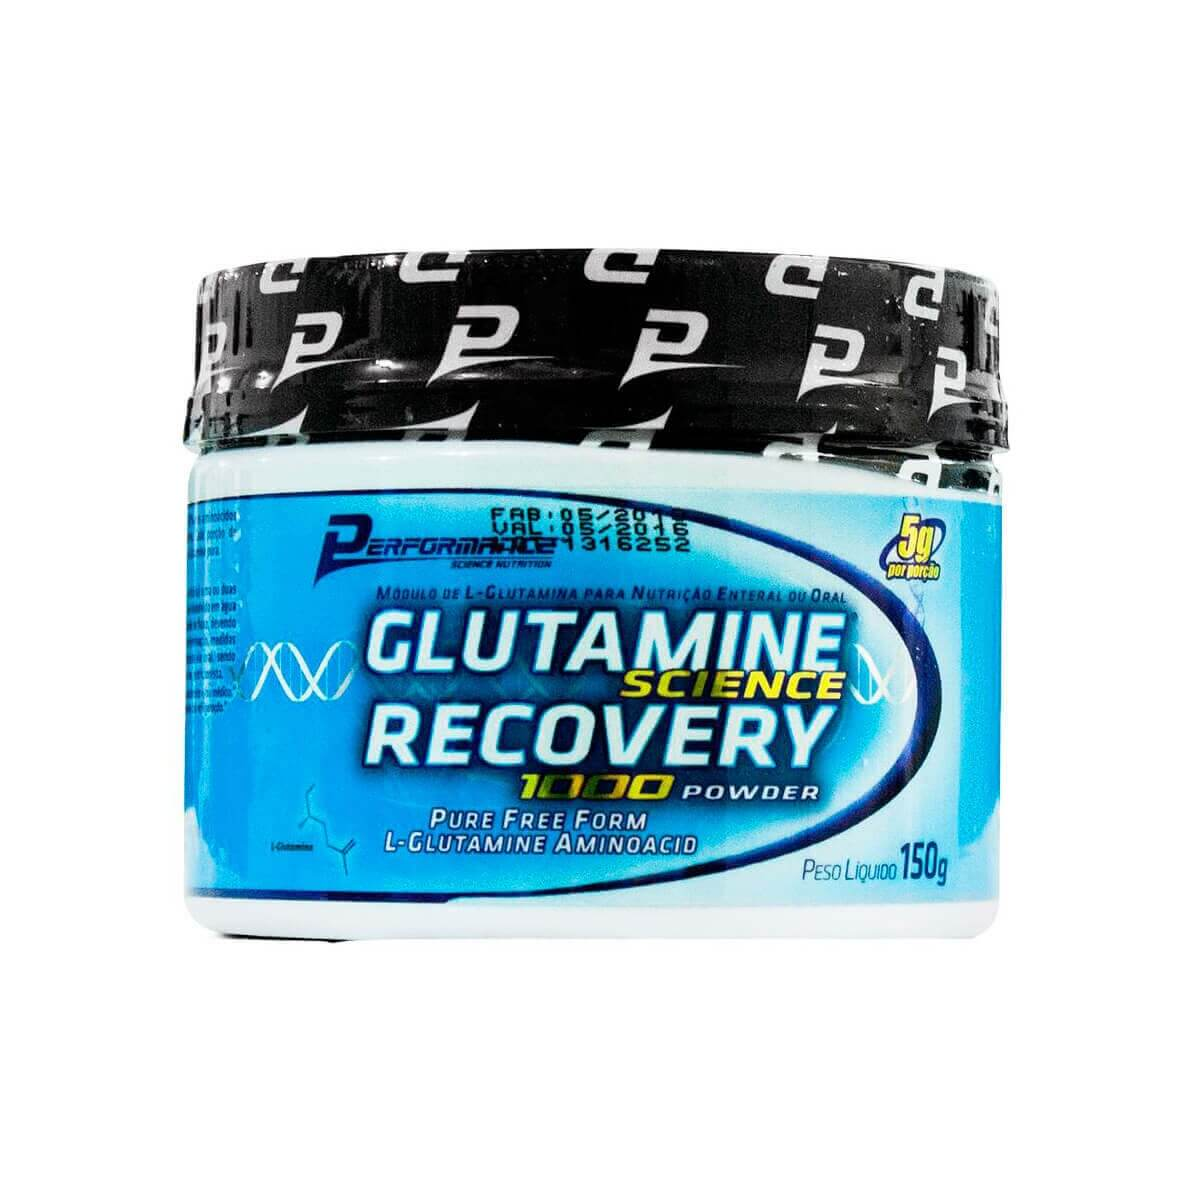 Glutamine Science Recovery 1000 Powder Performance Nutrition - 150g